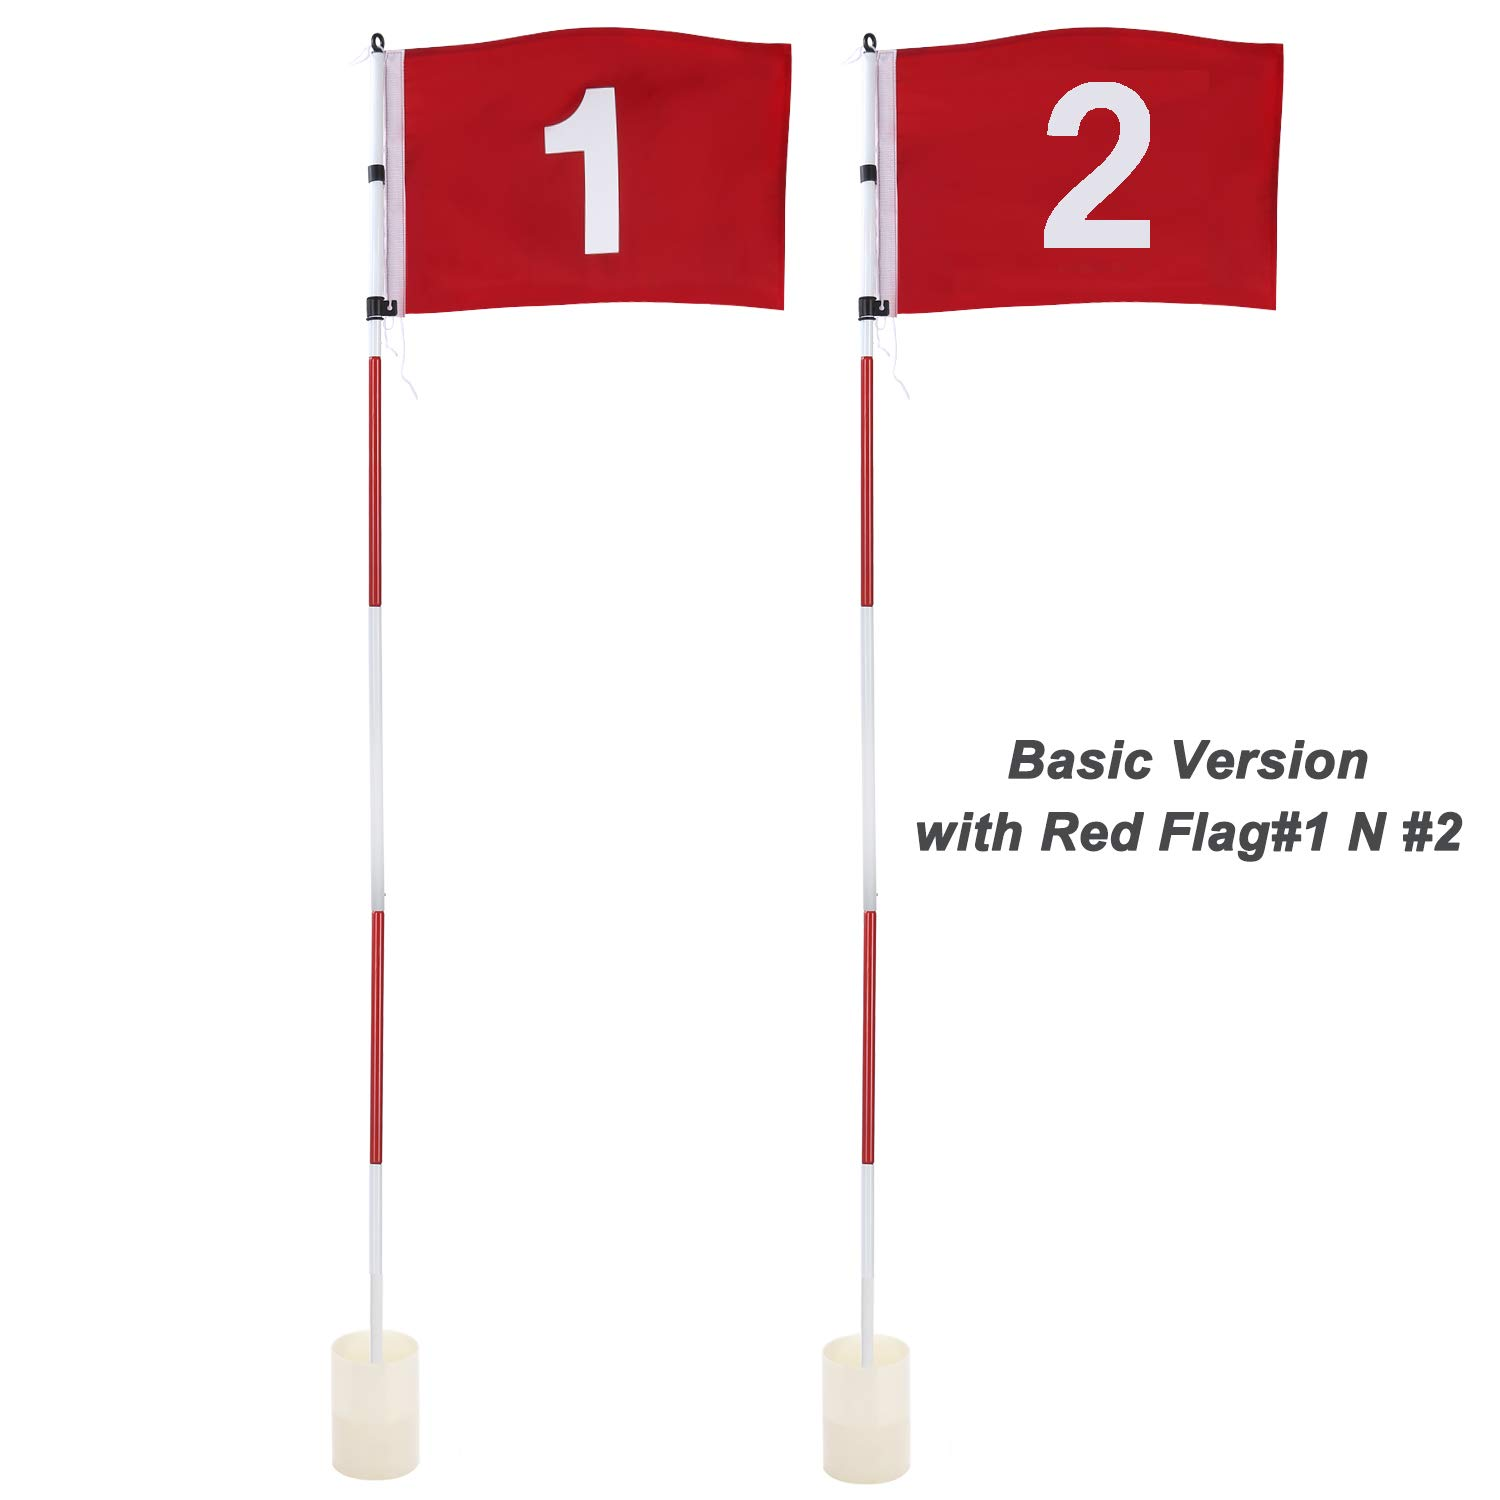 KINGTOP Golf Flag Stick, Practice Putting Green Flagstick Hole Cup Set, Golf Pin Flags for Driving Range/Backyard, Indoor/Outdoor, 5-Section Design, Solid Red Flag Numbered #1, 2, Both 71-inch, 2-Set